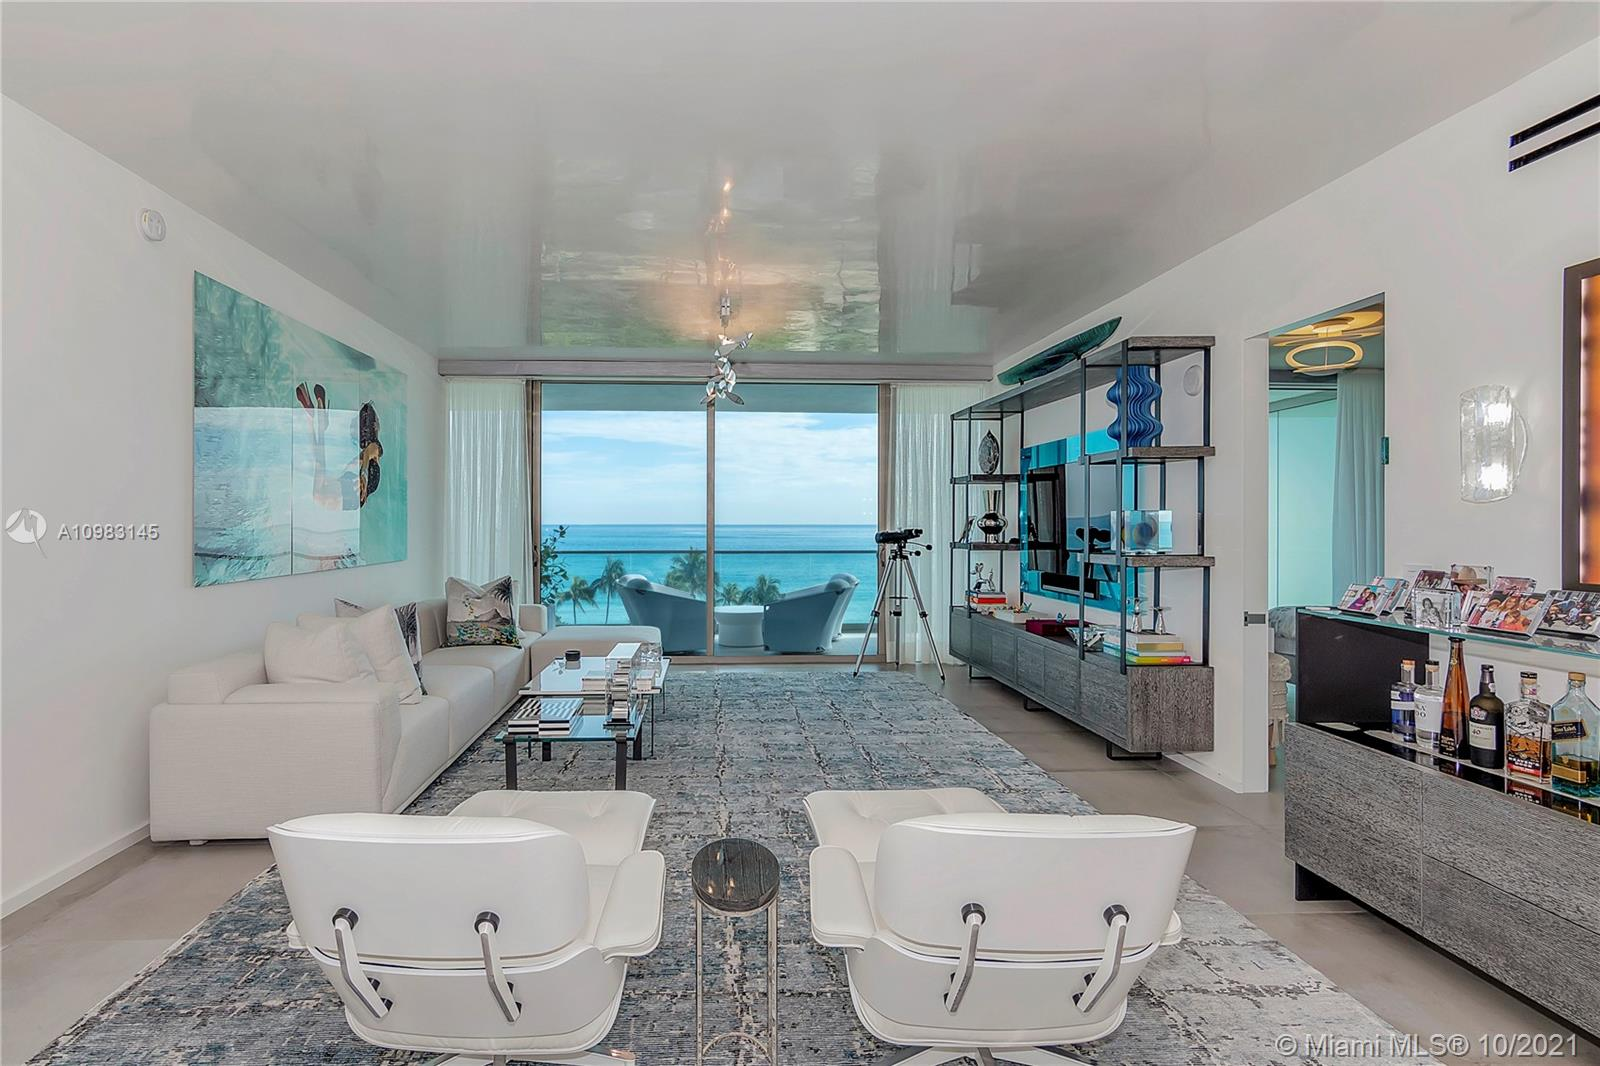 ARE YOU LOOKING FOR A PERFECT OCEAN FRONT CONDO, AT ONE OF THE BEST BEACHES OF SOUTH FLORIDA AND A HIGHLY SOUGHT AFTER LUXURIOUS BUILDING TO CALL IT HOME? OCEANA BAL HARBOUR IS WHAT YOU ARE LOOKING FOR. BEAUTIFULLY FINISHED AND PROFESSIONALLY DECORATED 2 BEDROOM + DEN  & 3 FULL BATHS WITH PLENTY OF UPGRADES THROUGH OUT. COME IN THROUGH YOUR PRIVATE ELEVATOR AND FOYER AND BE MESMERIZED BY THE OCEAN VIEW AS YOU ENTER YOUR HOME. THIS FAMILY ORIENTED 5 STAR COMPLEX OFFERS  AMENITIES SUCH AS 2 POOLS, CABANAS, FULL BEACH SERVICE, 2 CLAY TENNIS COURTS, 1/3 BASKETBALL COURT, GYM/FITNESS ROOMS WITH PELOTON BIKES, LUXURY SPA AND SERVICES, 7 DAYS/WEEK CONCIERGE & VALLET SERVICES,  LIBRARY, PARTY ROOM AND A PRIVATE RESTAURANT RUN BY TOSCANA DIVINO. EASY TO SHOW. CALL/TEXT TO SCHEDULE A  SHOWING.